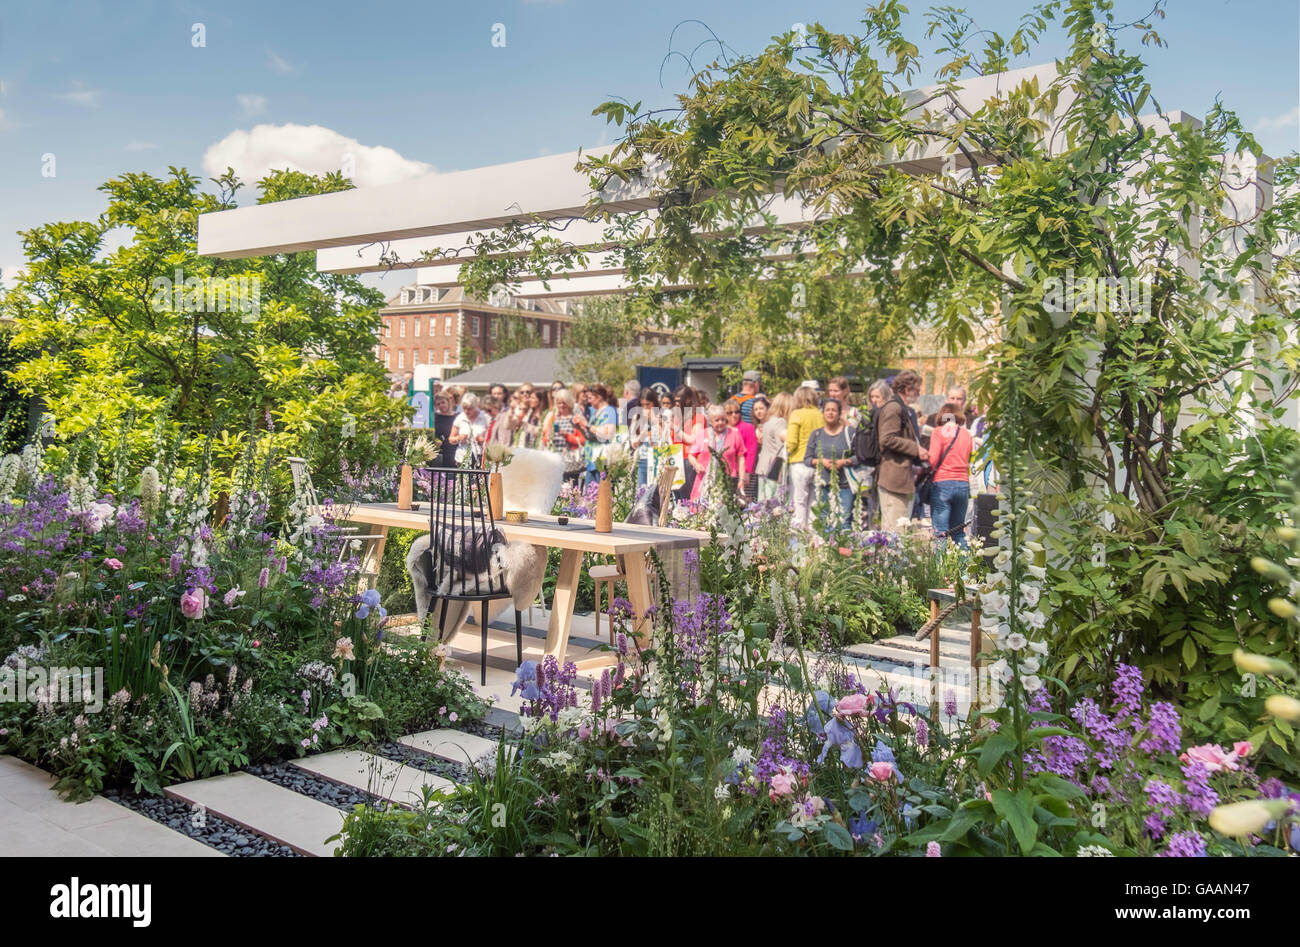 A show garden at the RHS Chelsea flower show, designed by hay Joung Hwang. Stock Photo